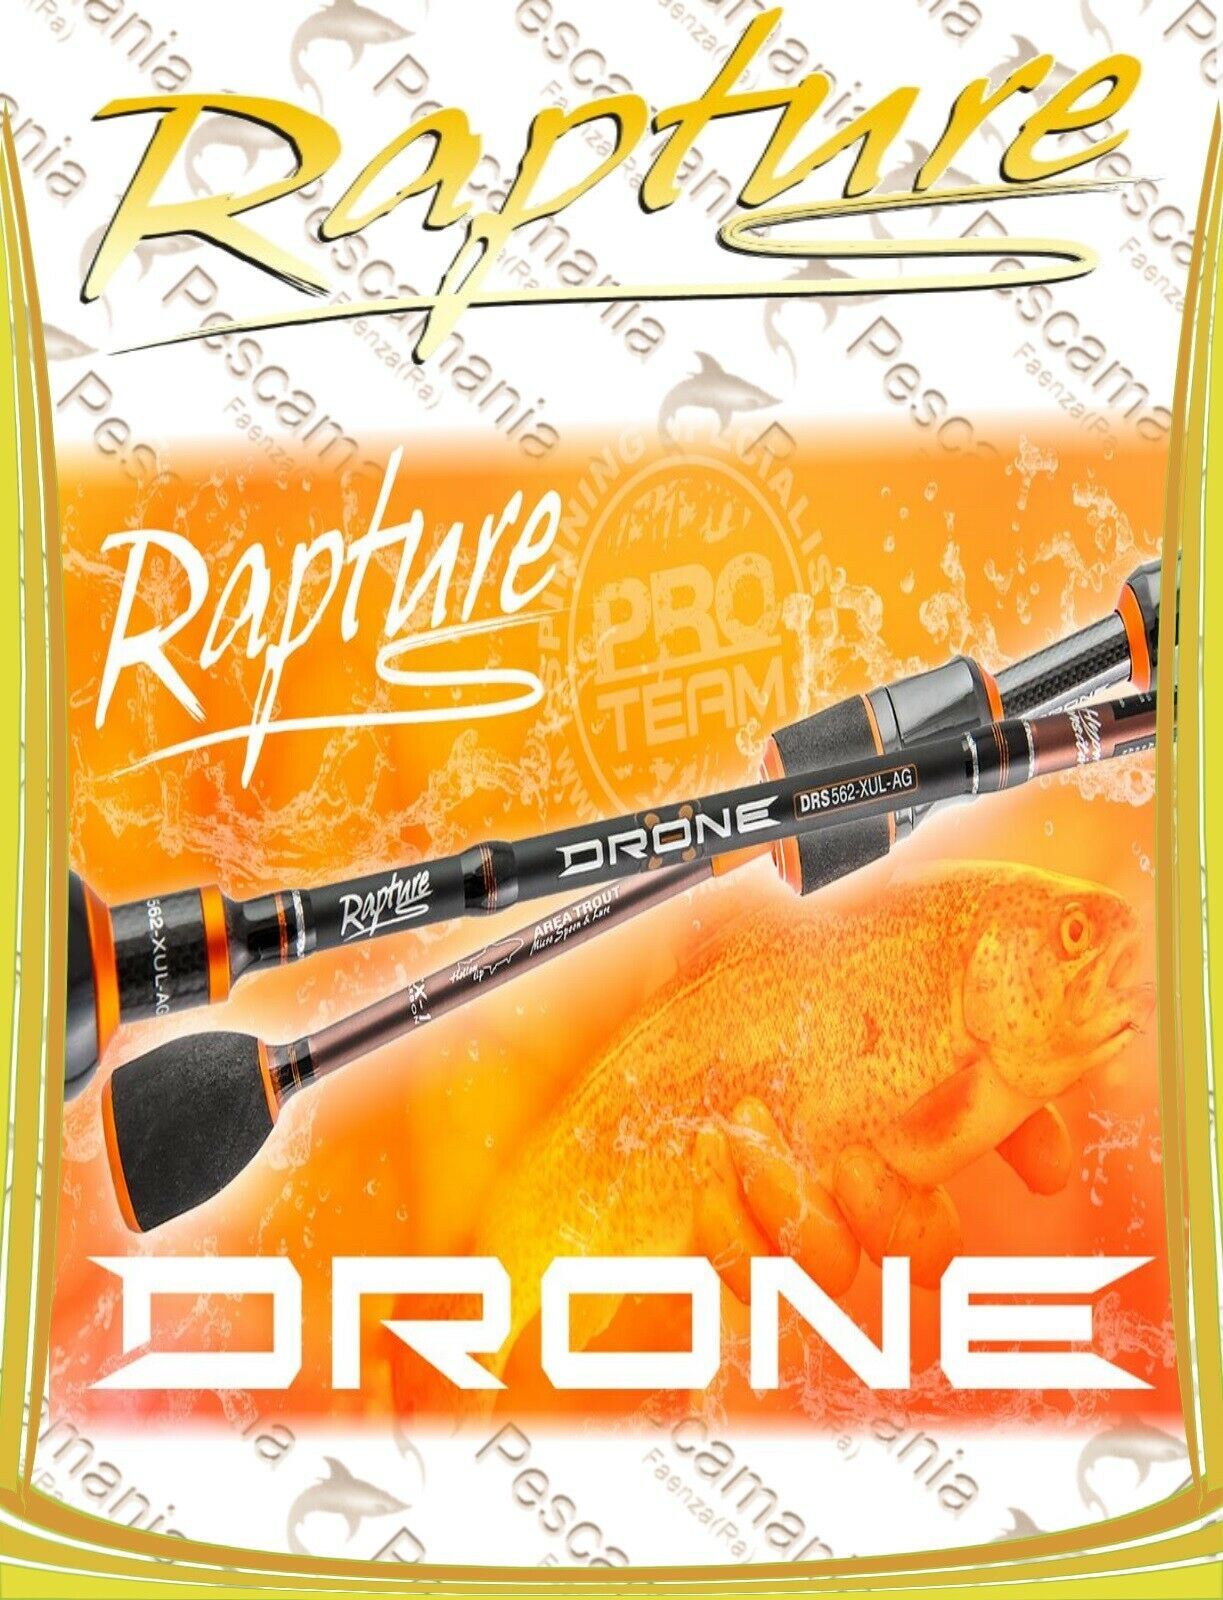 Canna spinning Rapture DRONE Light spinning Area Special trout trojoa